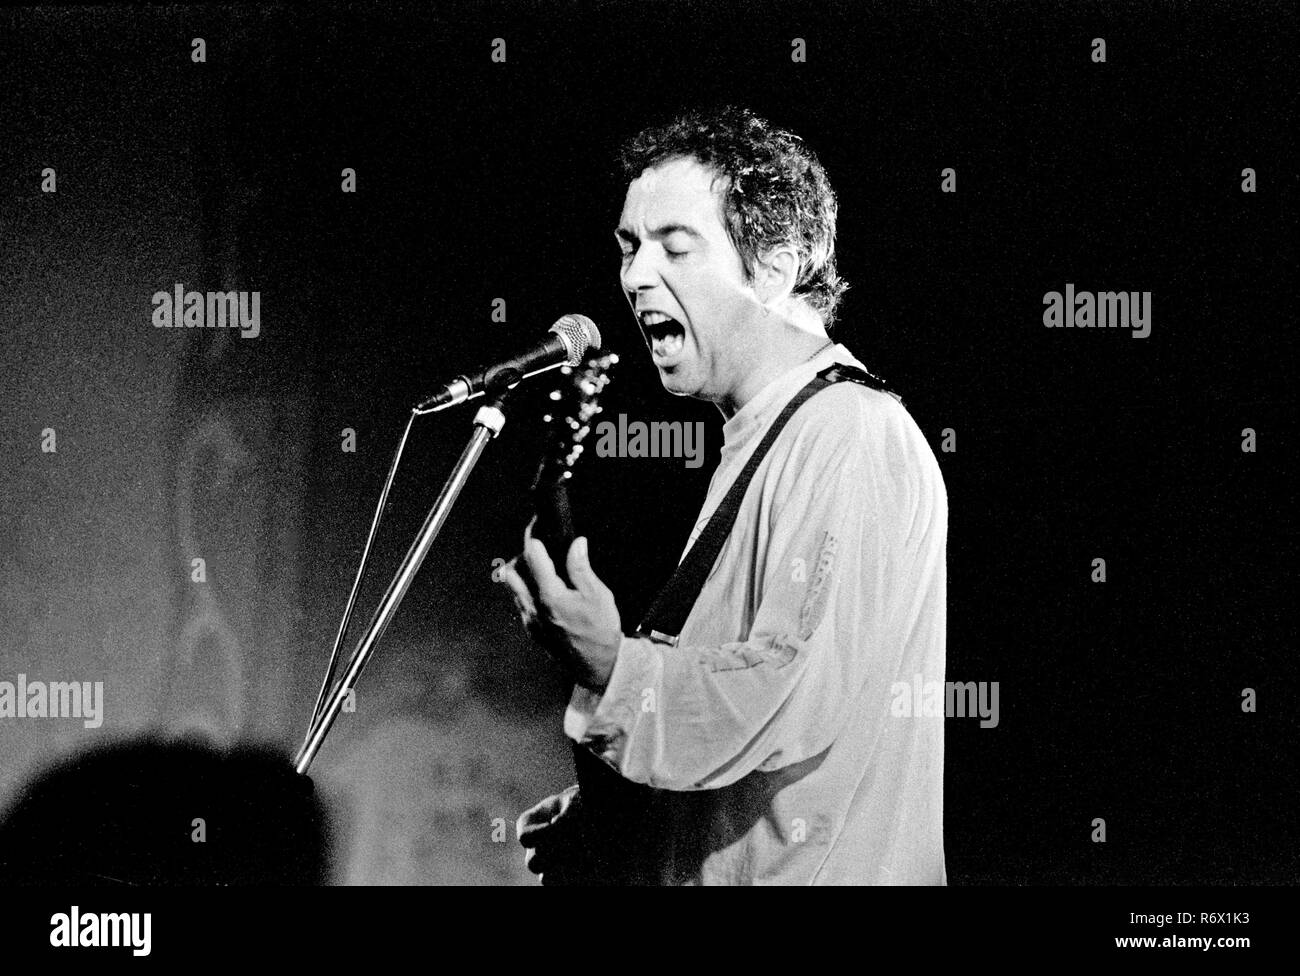 File picture : Pete Shelley performing with The Buzzcocks  at the Patti Pavillion in Swansea on 11th October 1990. He has passed away today (6th December 2018) age 63. - Stock Image